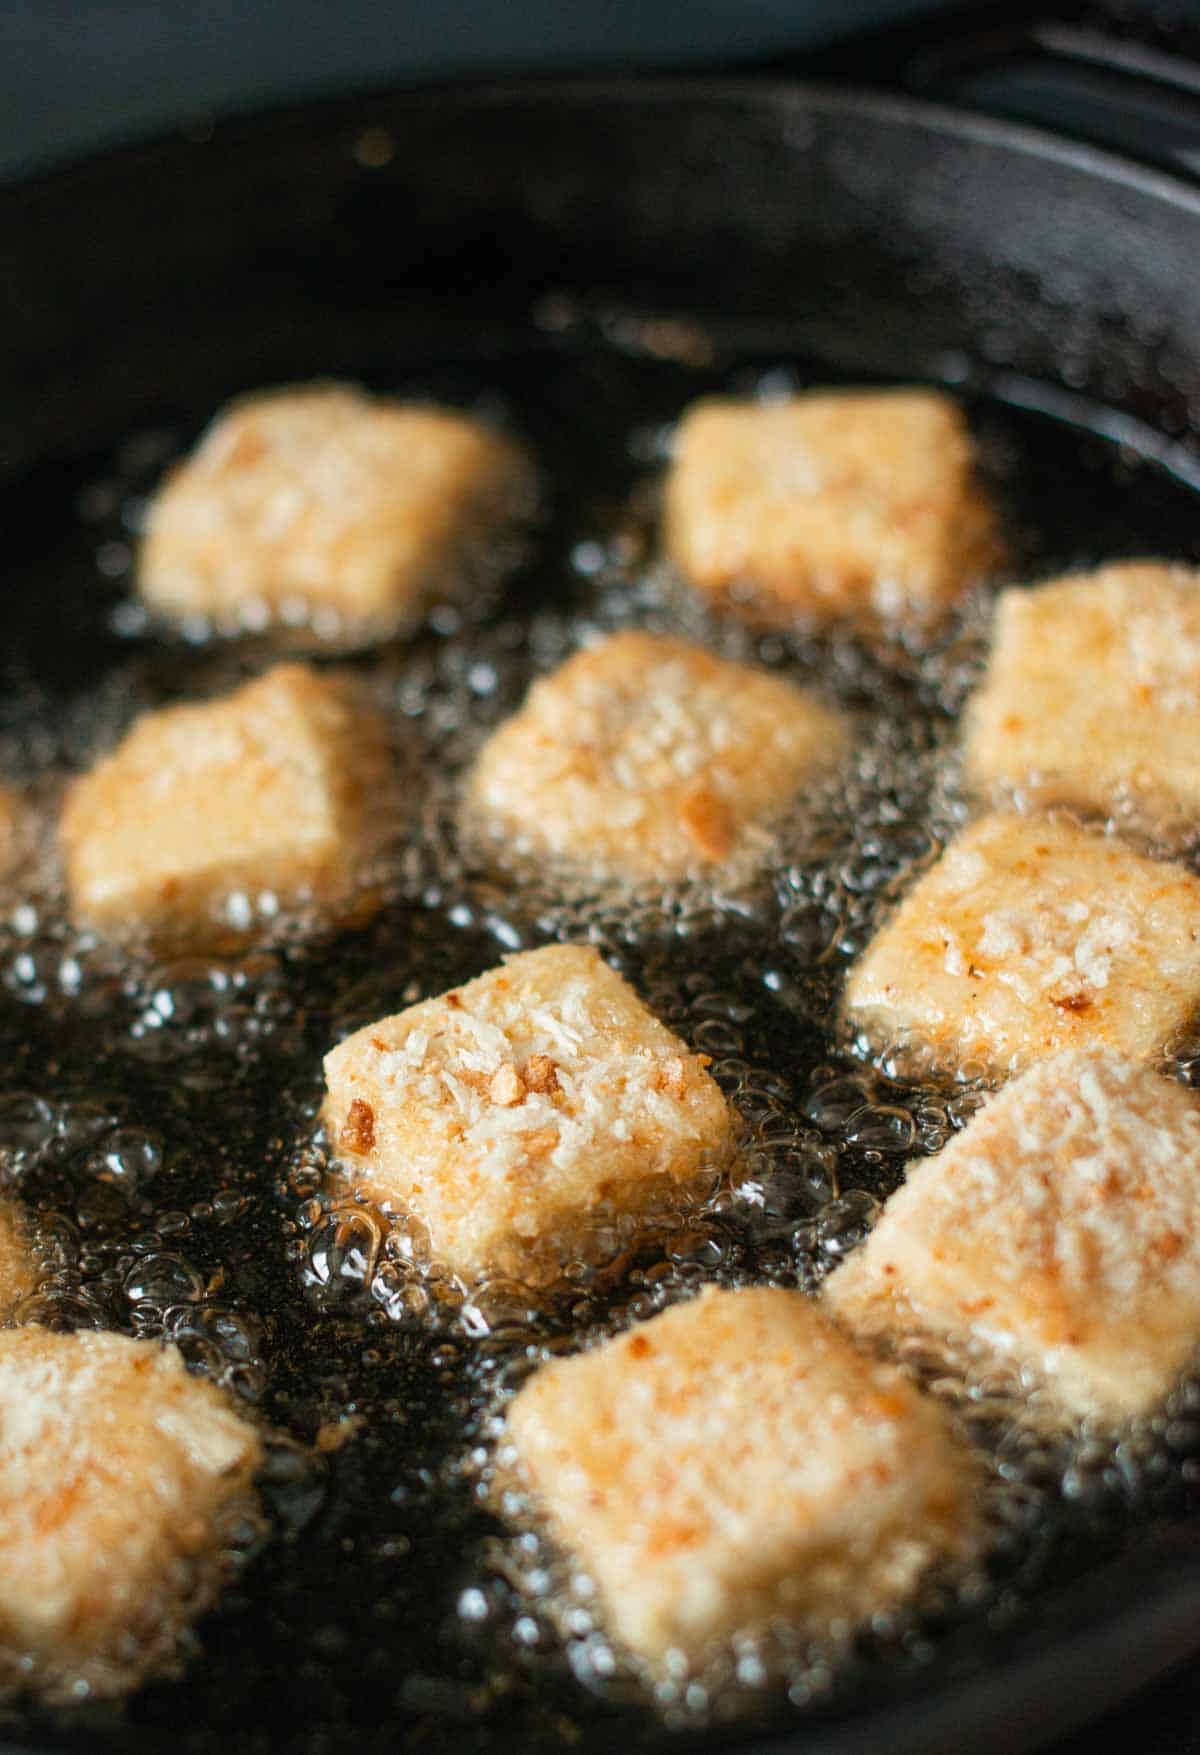 tofu nuggets while frying